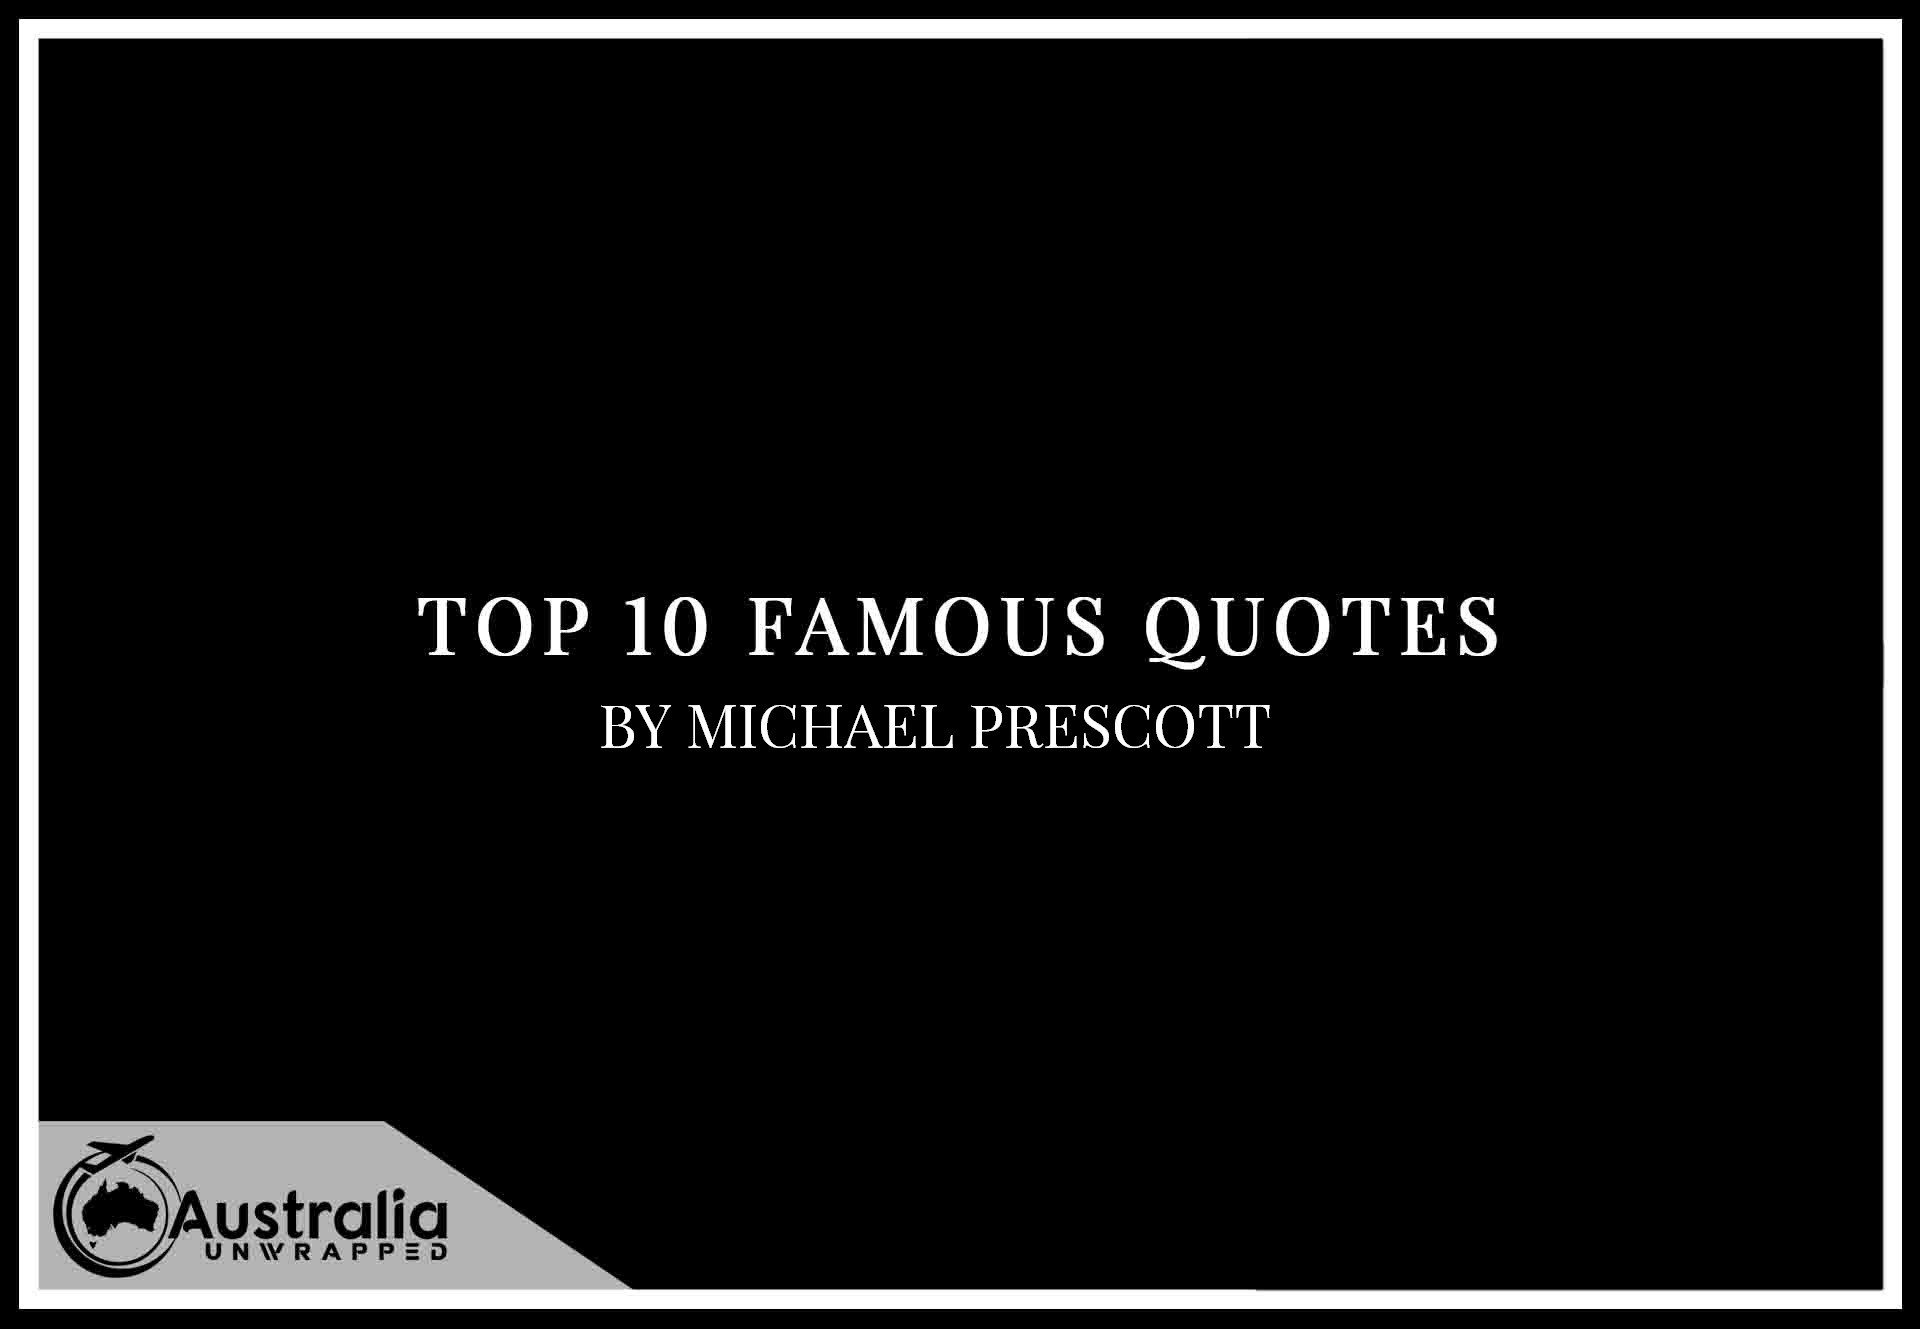 Top 10 Famous Quotes by Author Michael Prescott